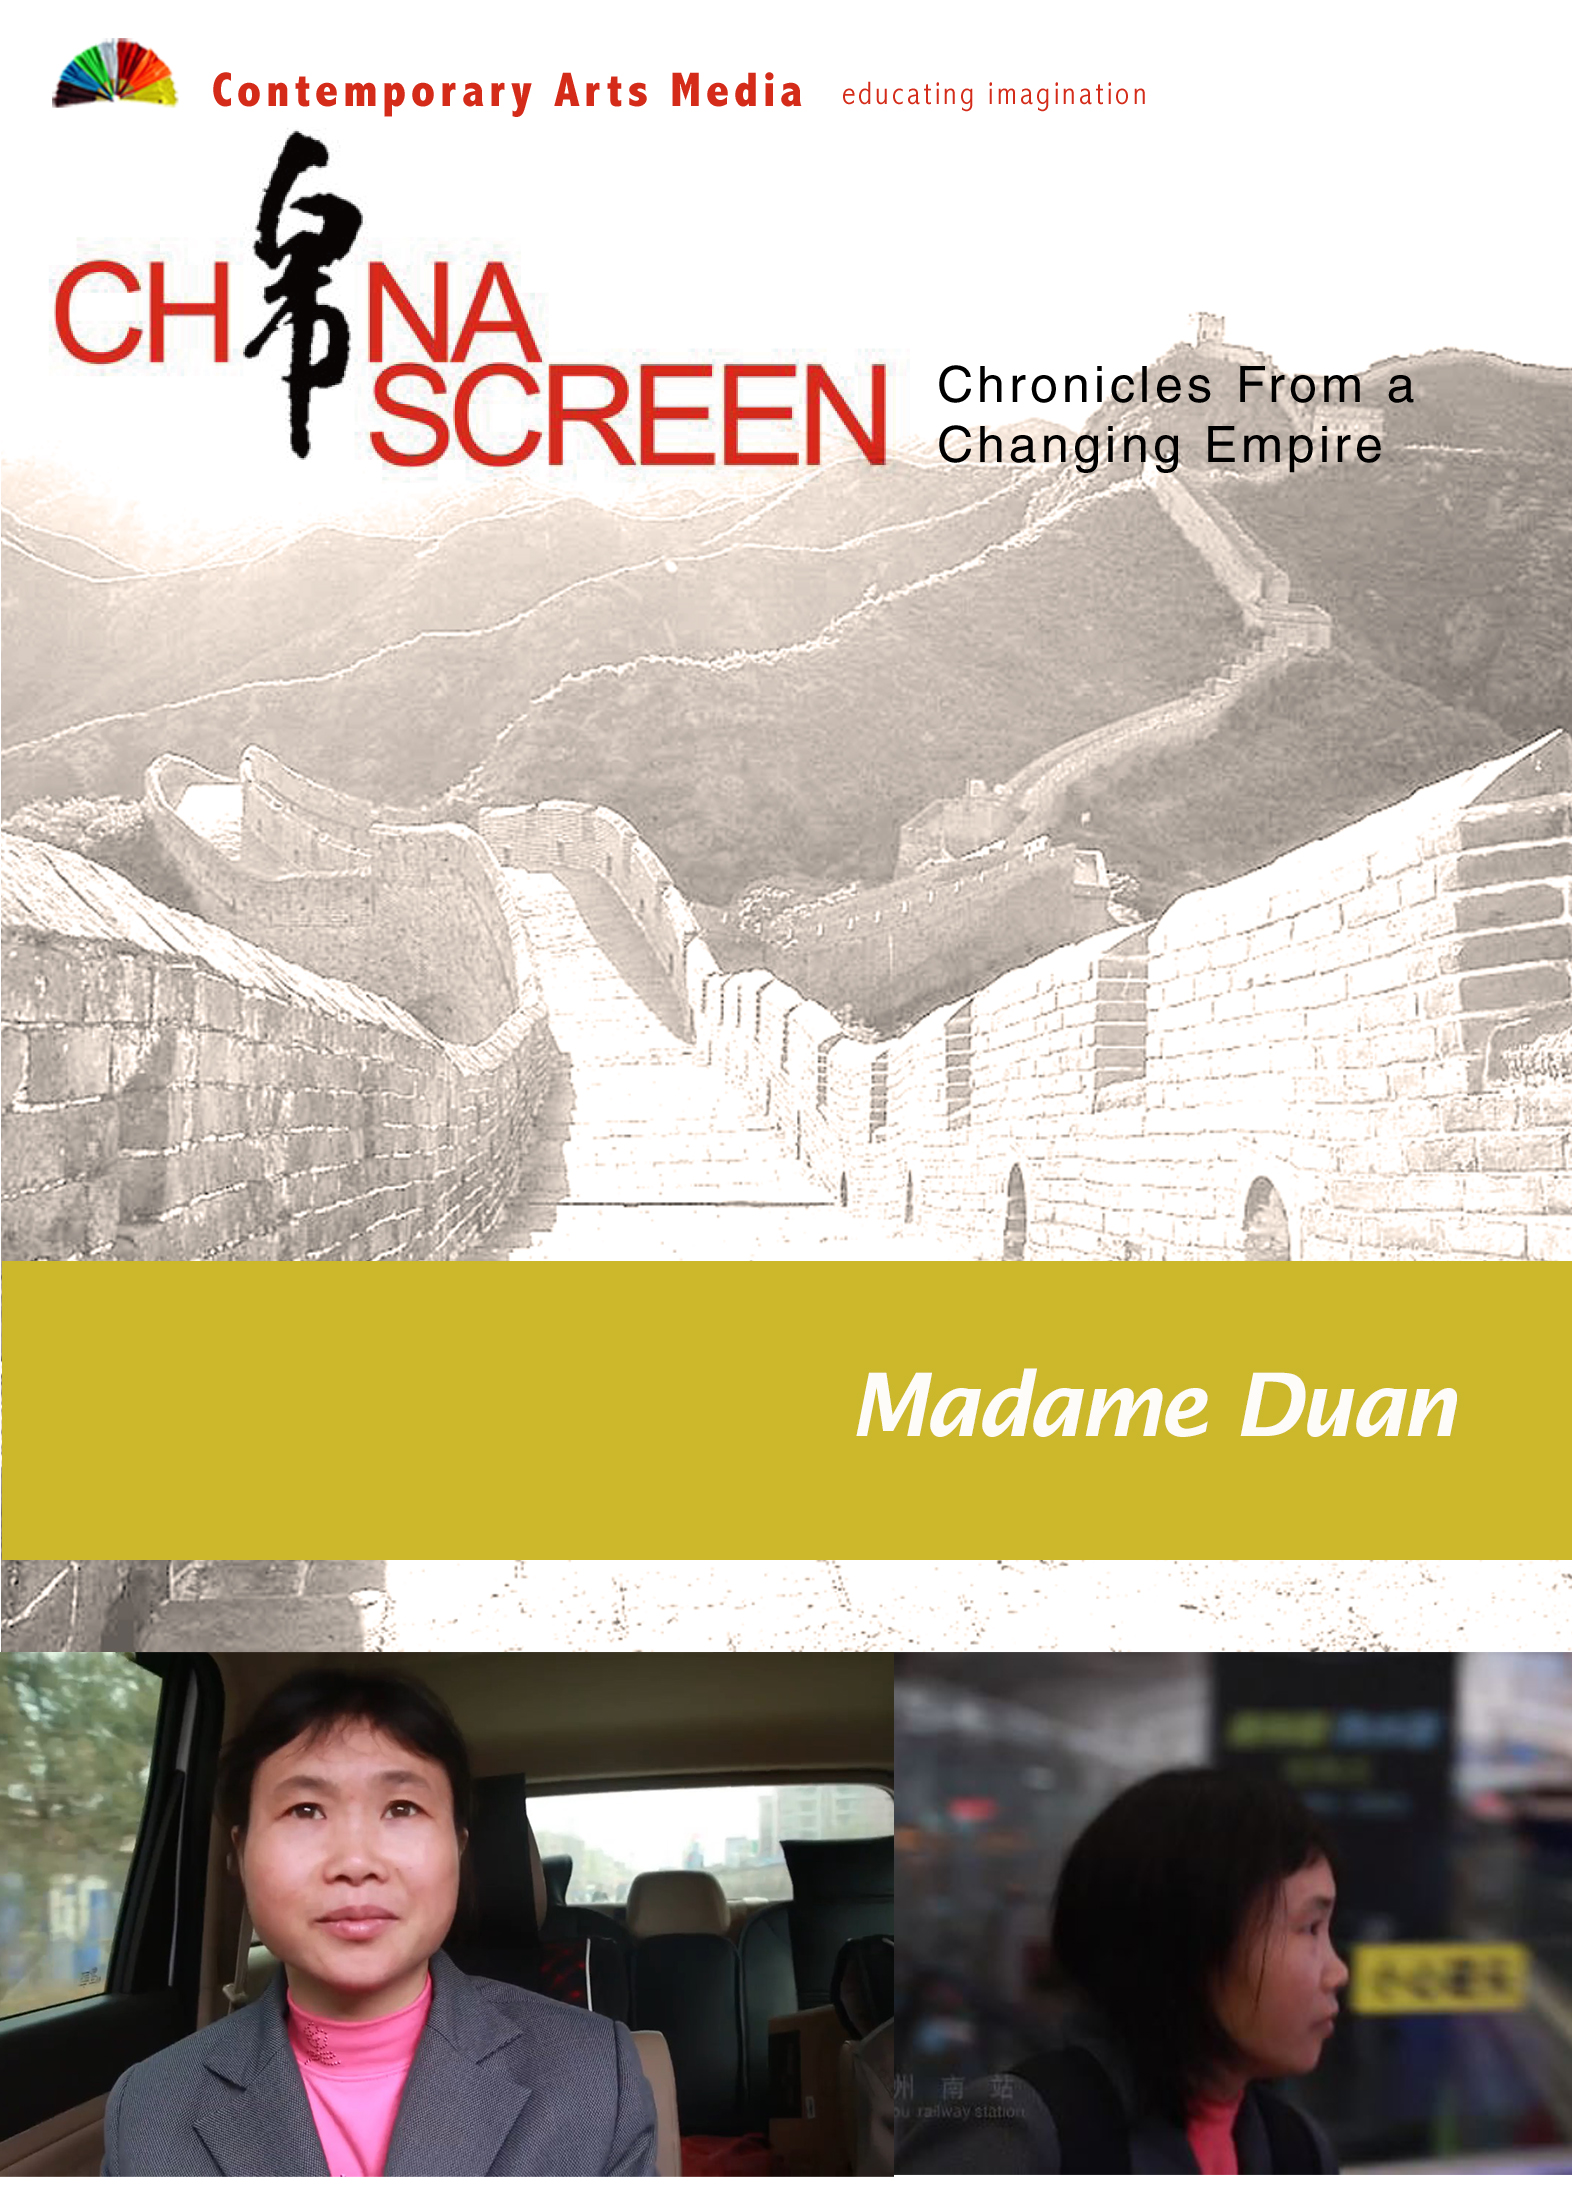 China Screen: Madame Duan